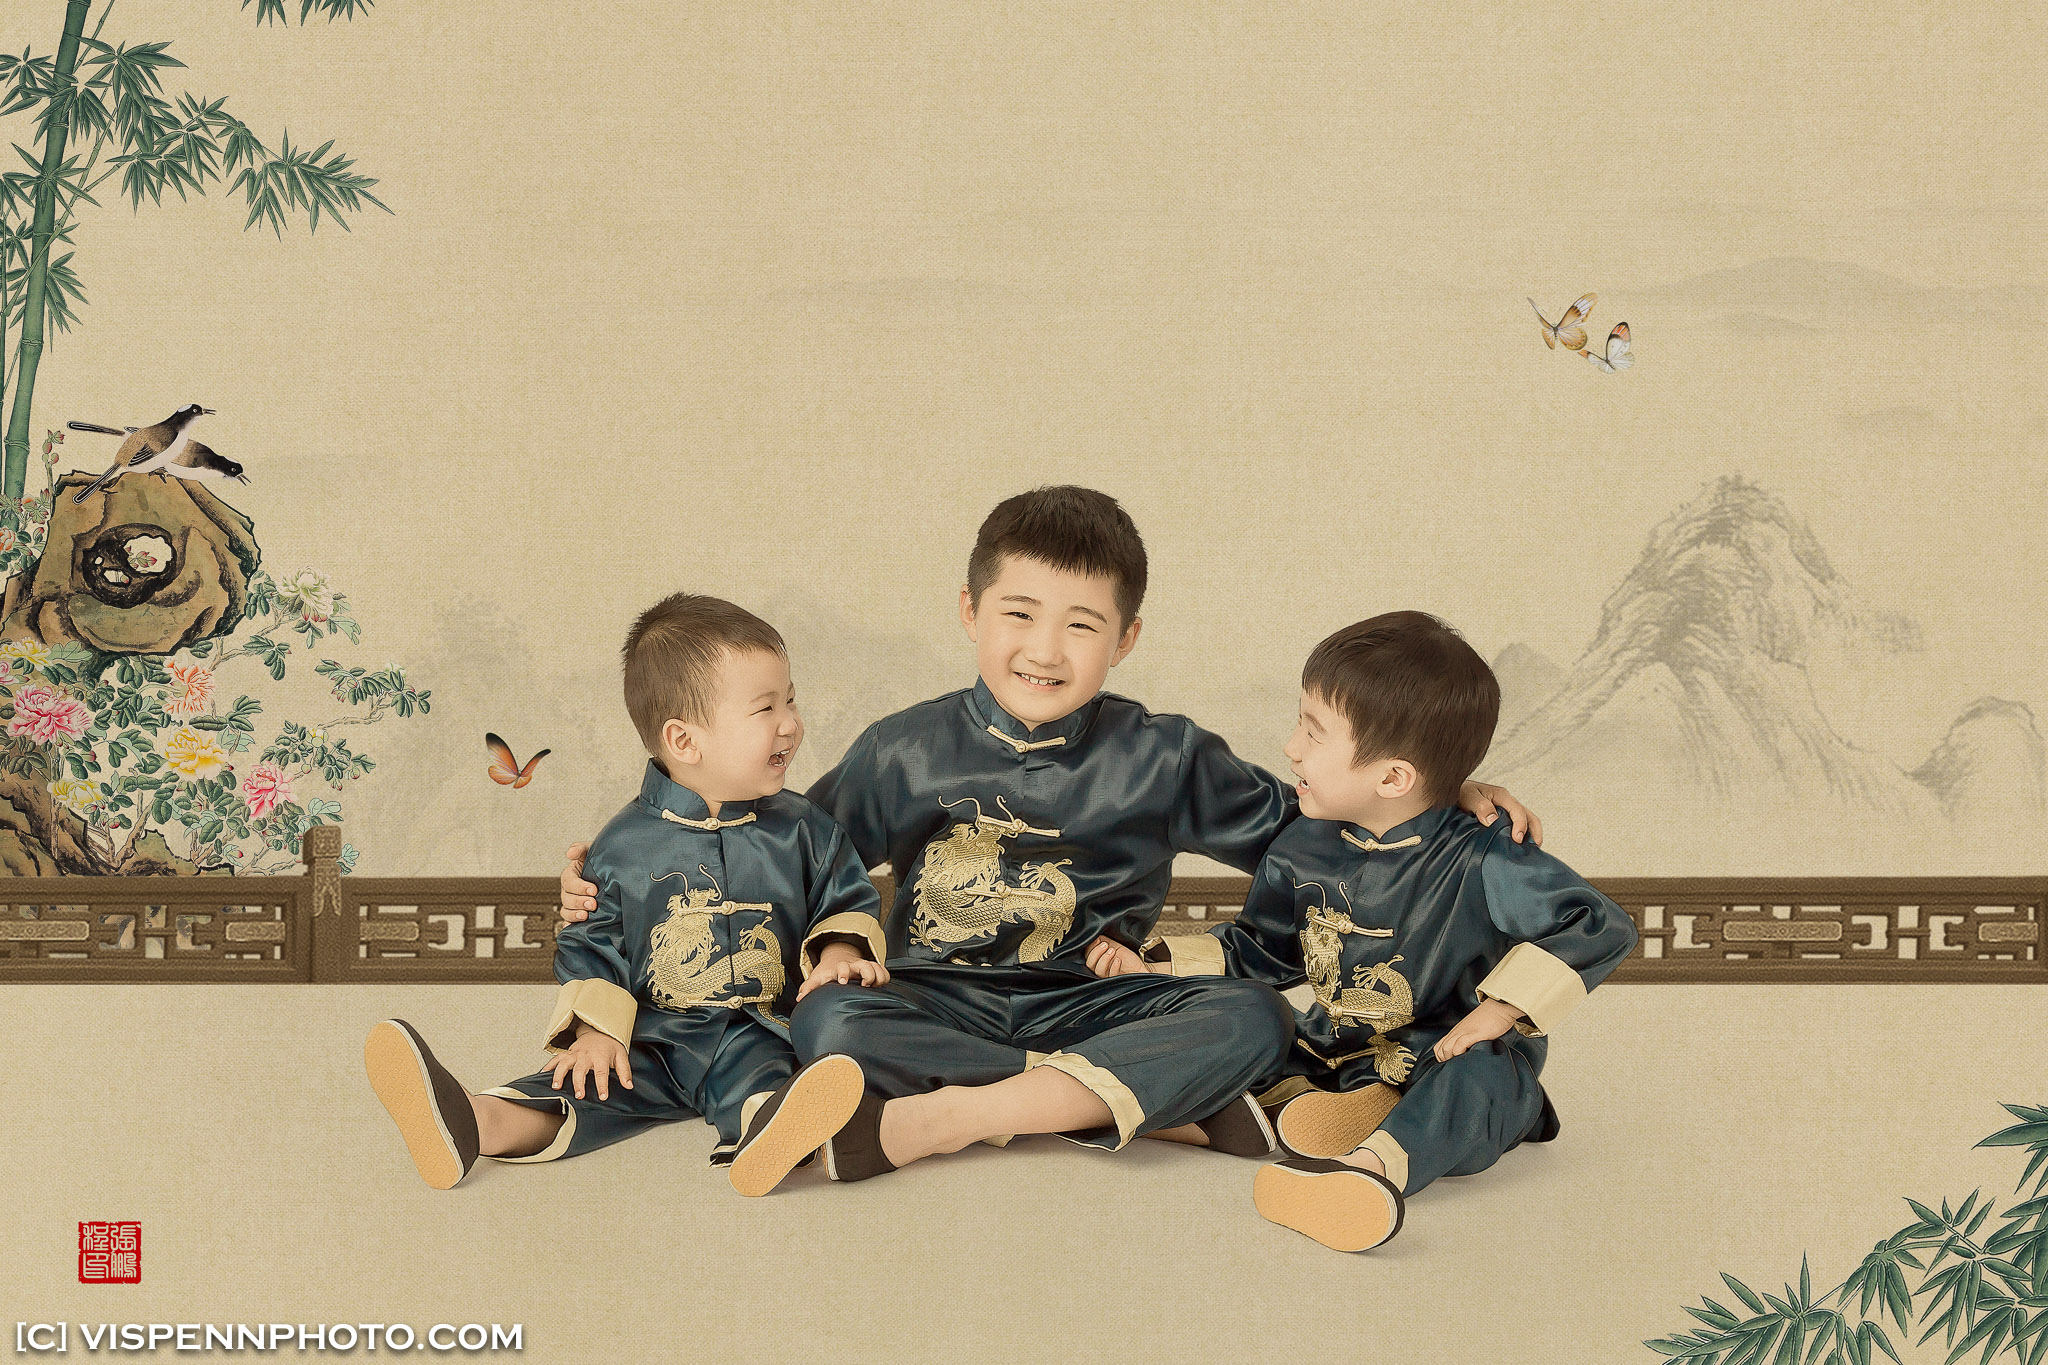 Melbourne Newborn Baby Family Photo BaoBao VISPENN 墨尔本 儿童 宝宝 百天照 满月照 孕妇照 全家福 KIDS VISPENN ErinXing 1158